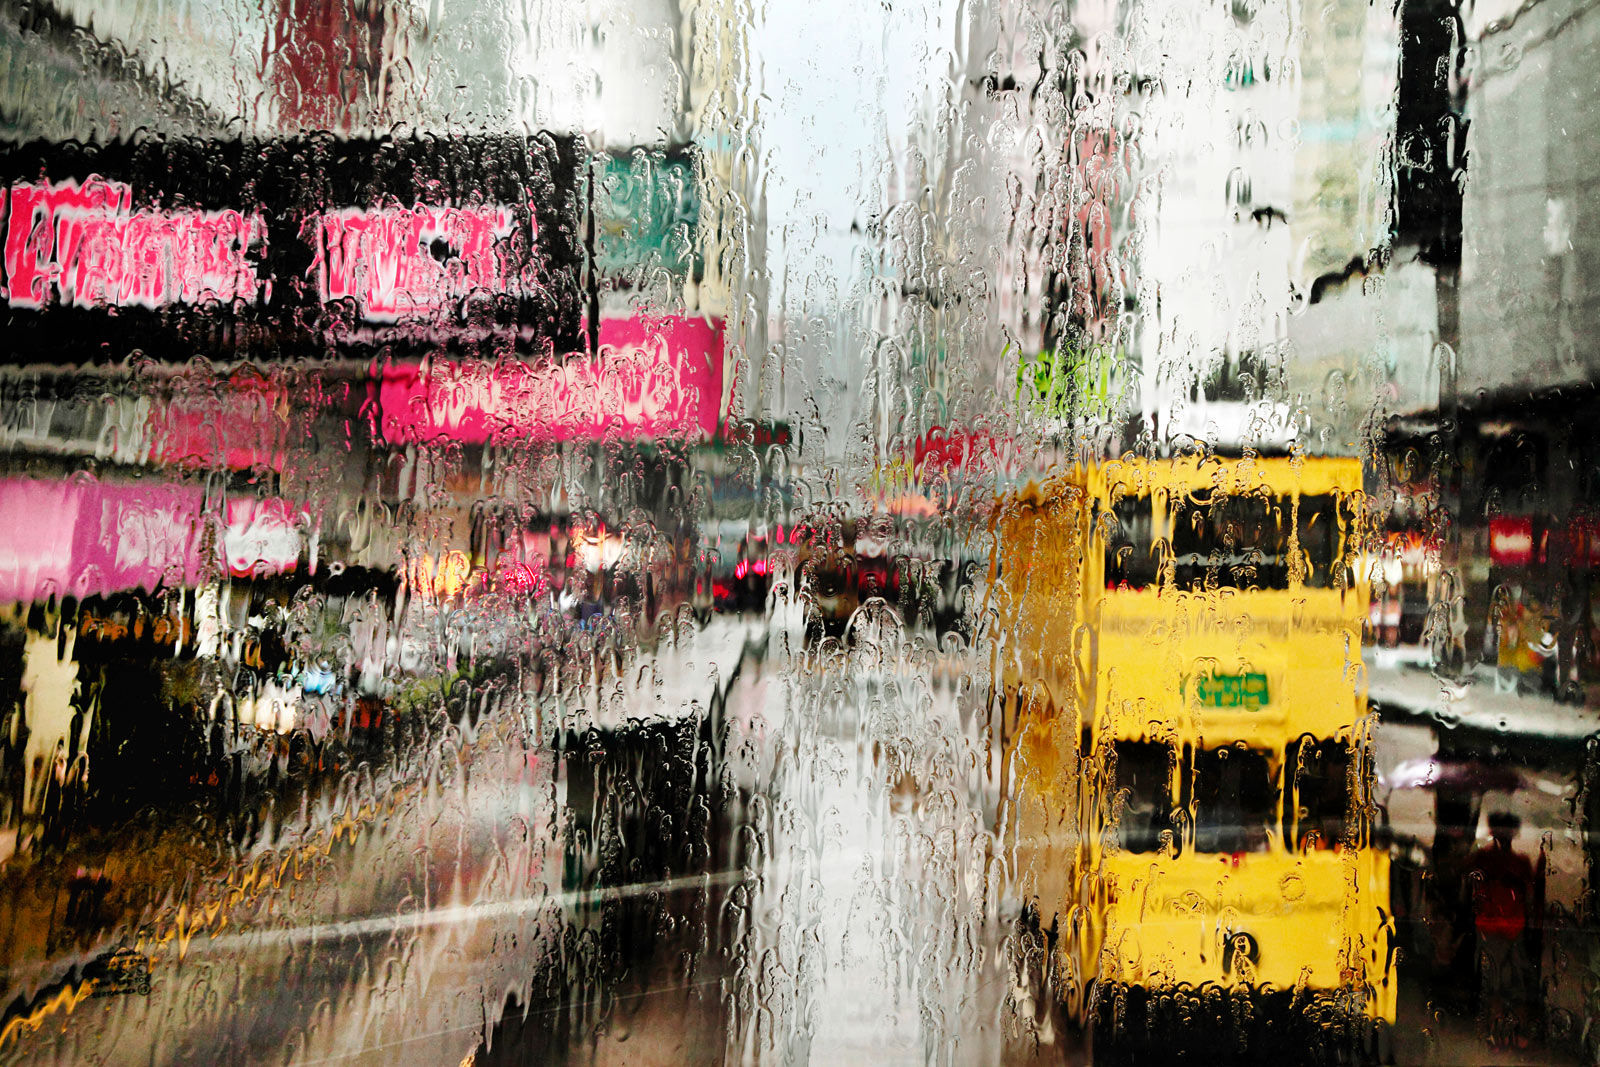 Oil 6 by Christophe Jacrot